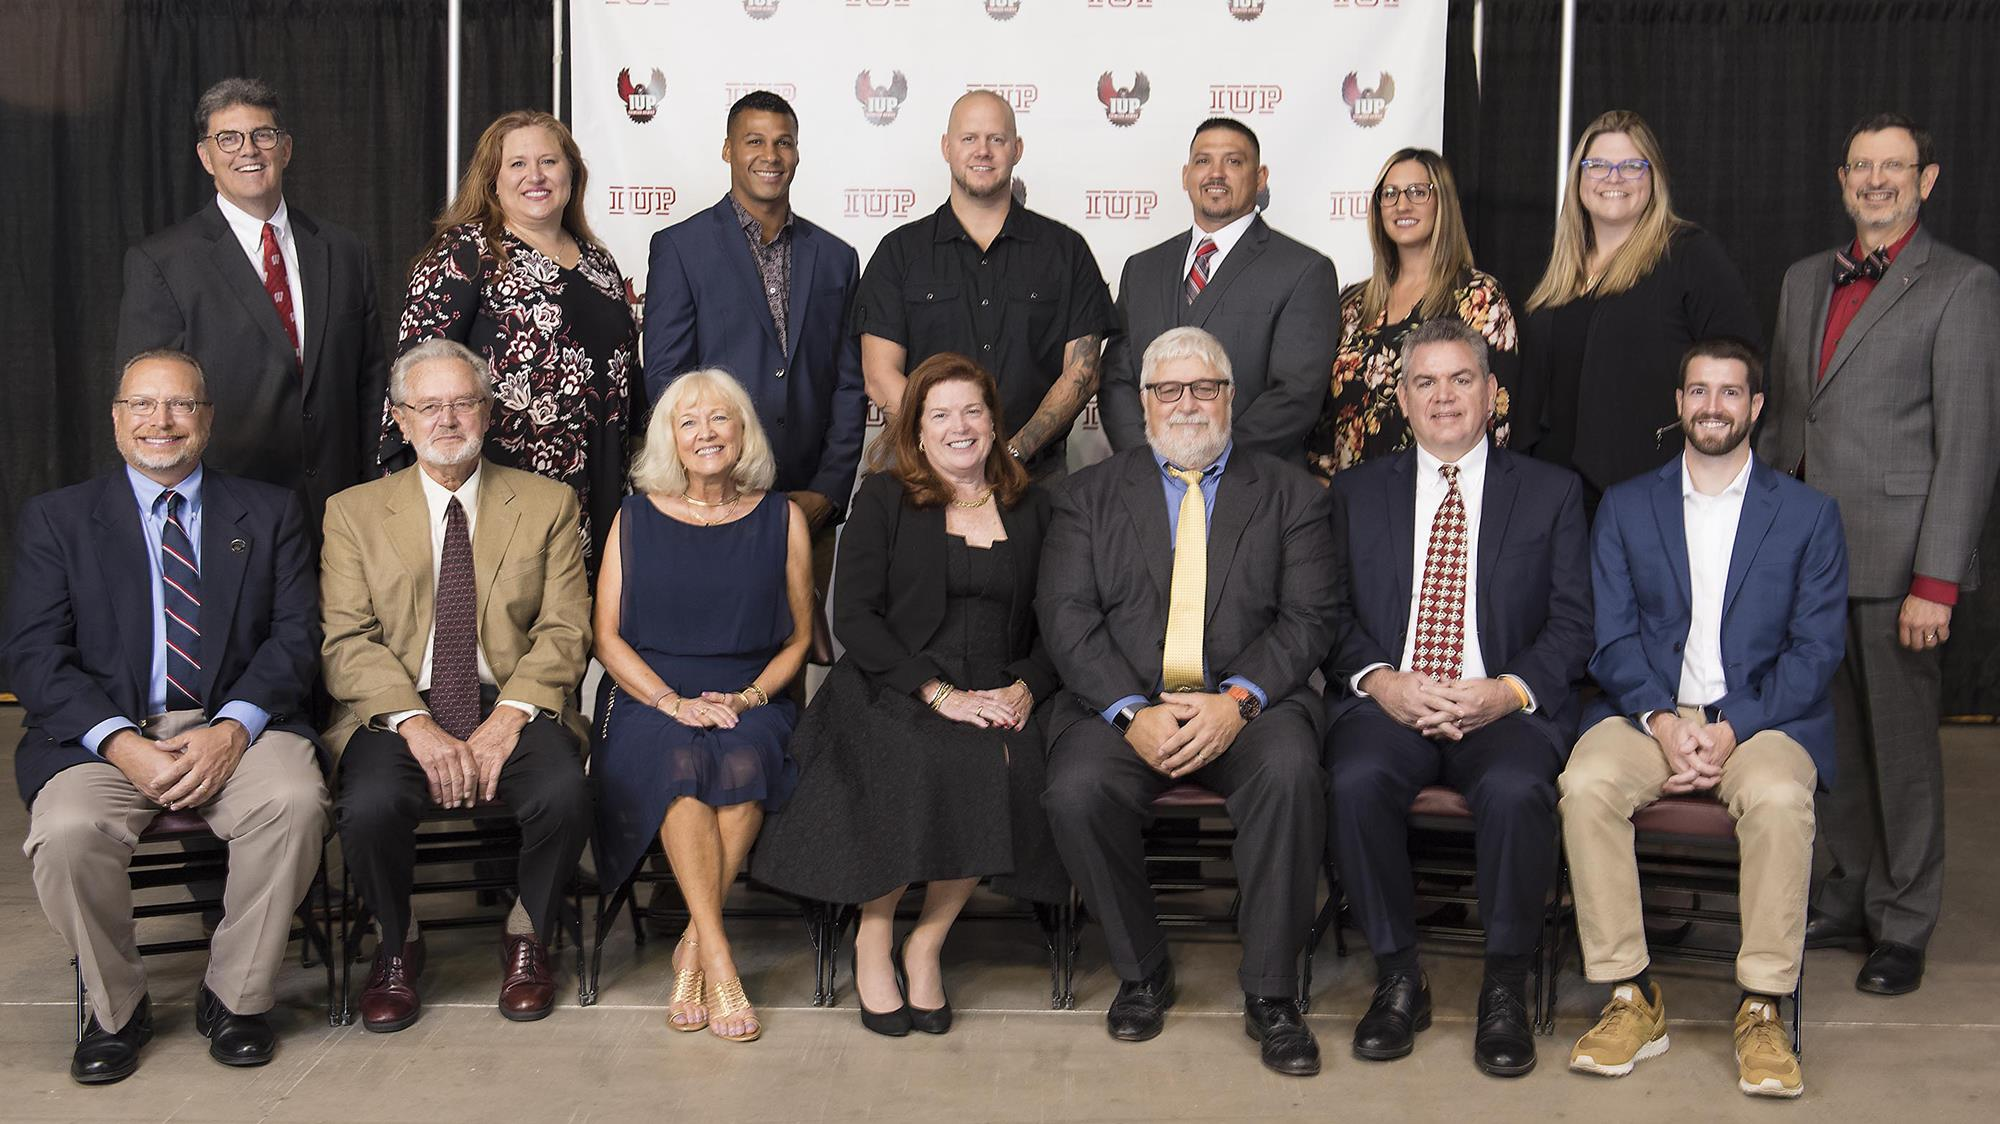 IUP Athletics inducts 2018 Hall of Fame Class Saturday - Indiana ... 3b5fa40c5